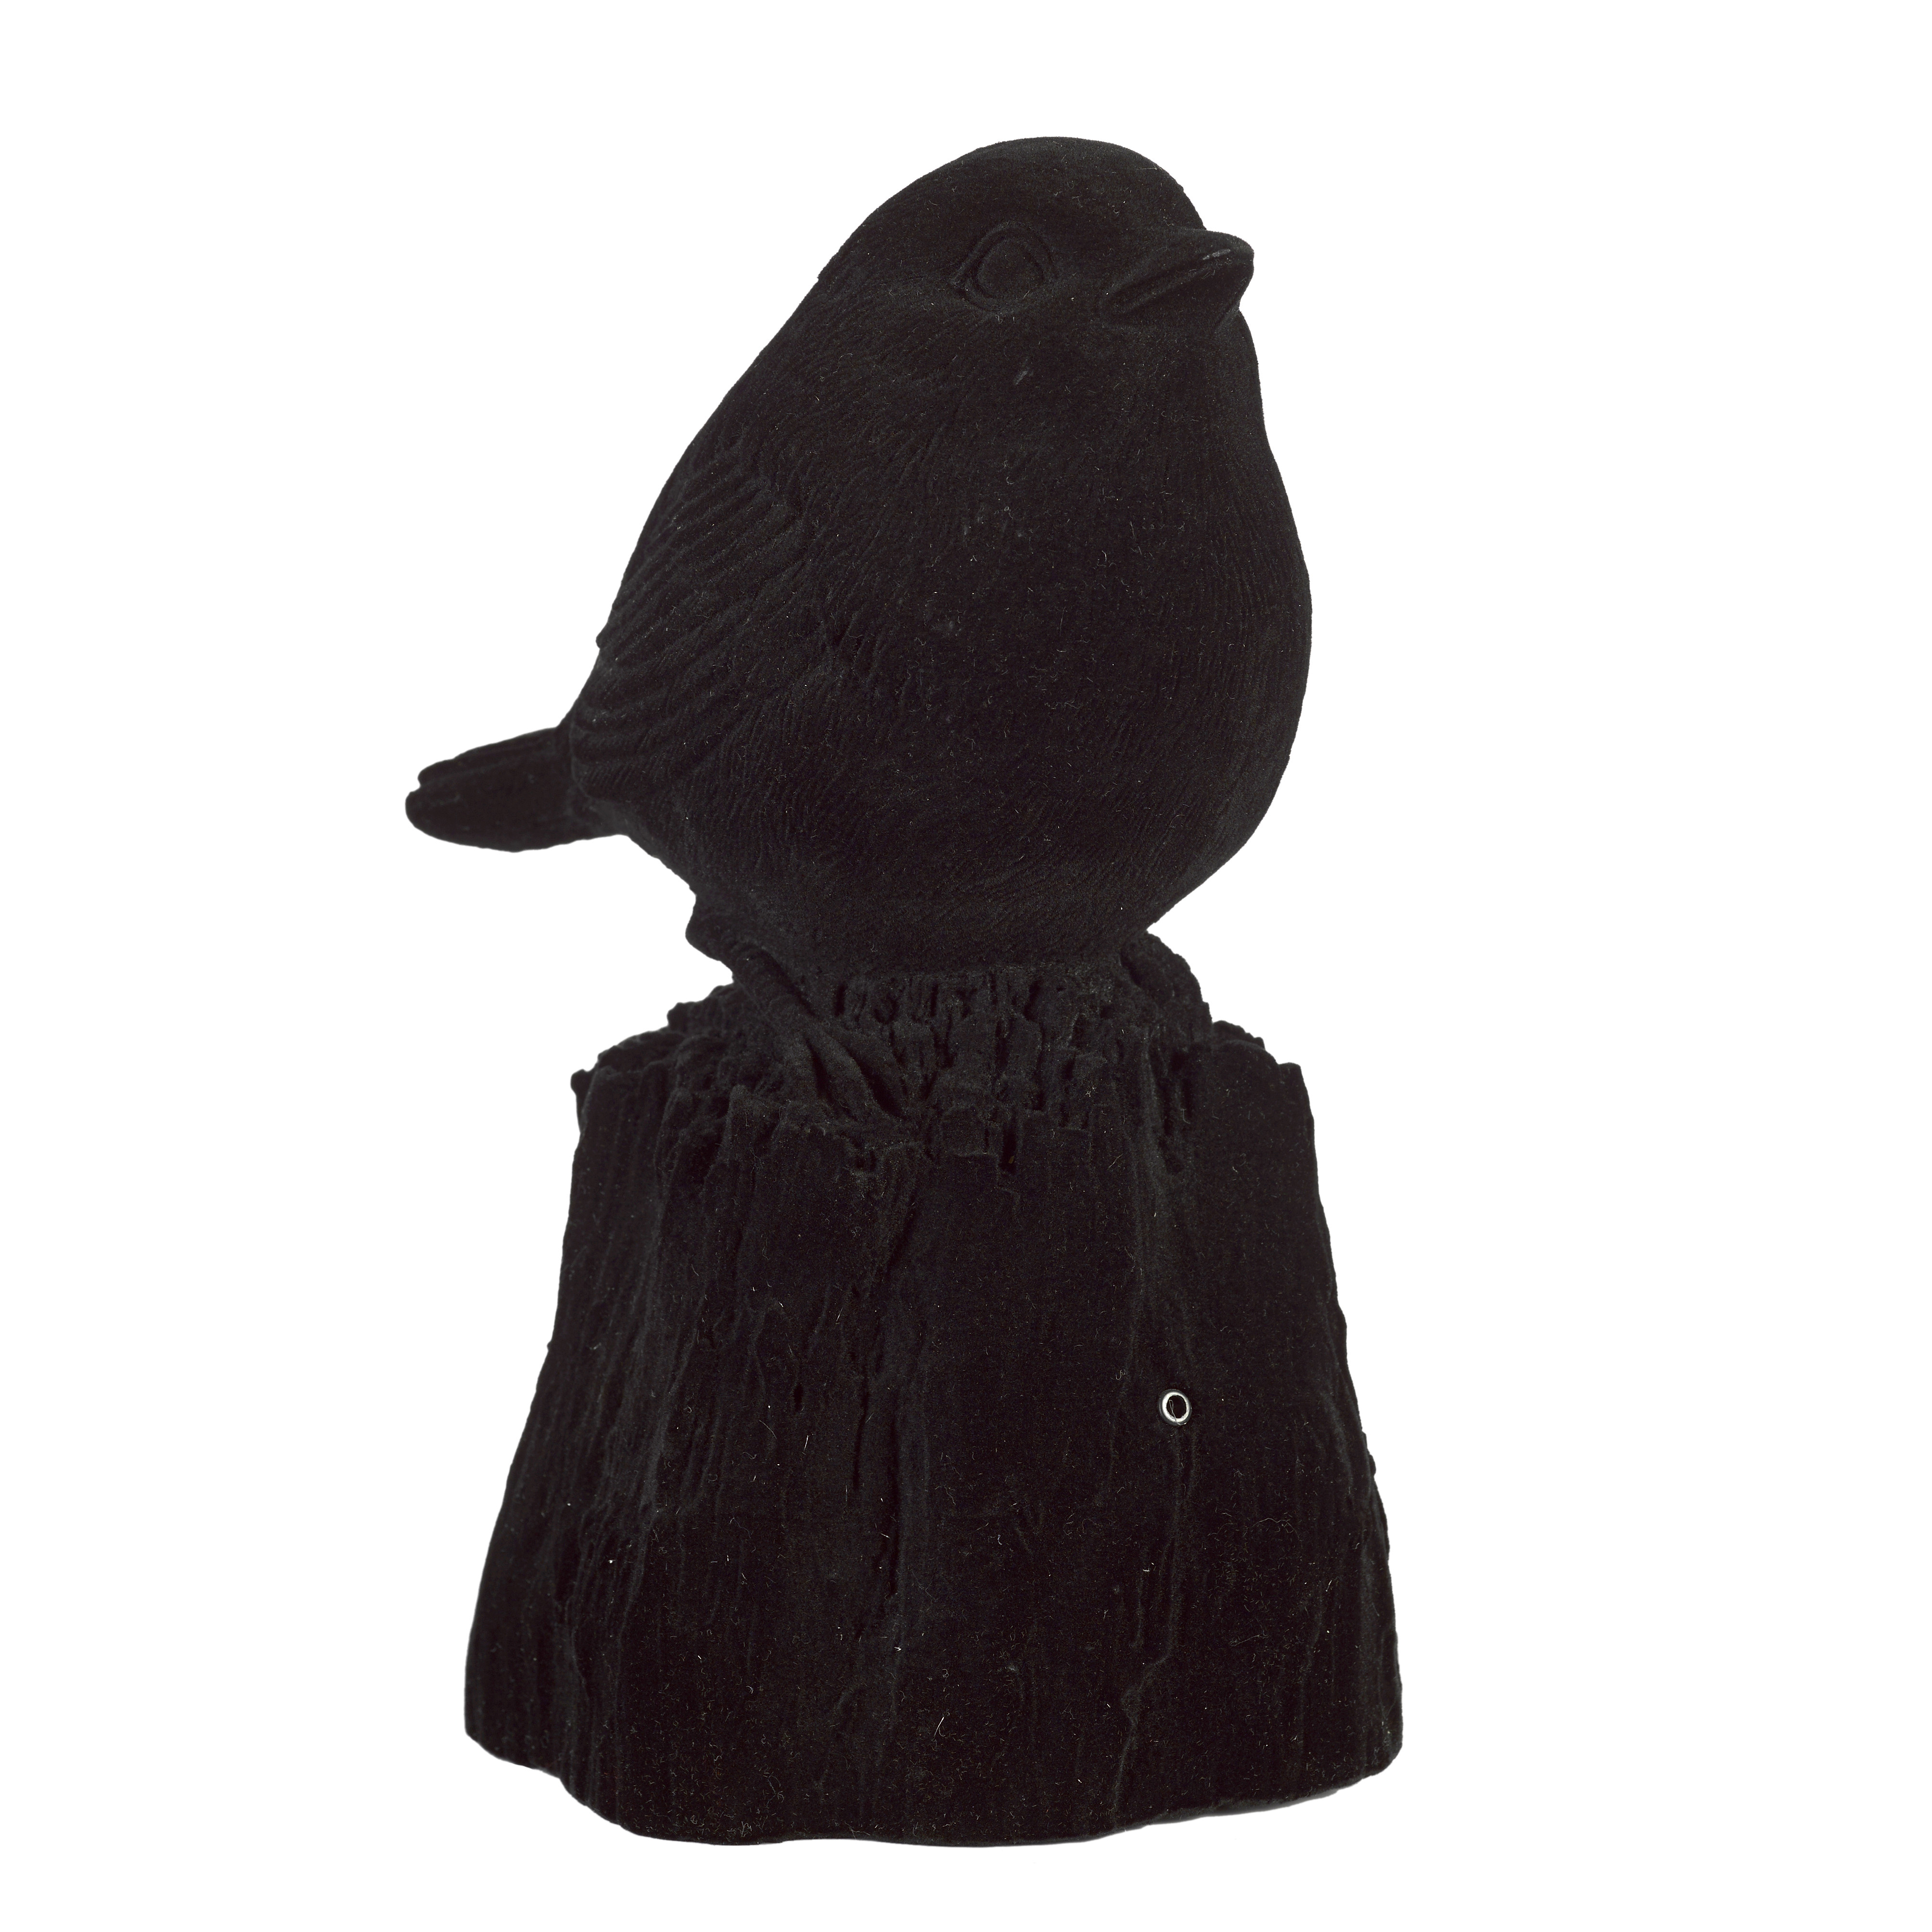 SINGING BIRD VELVETY BLACK L